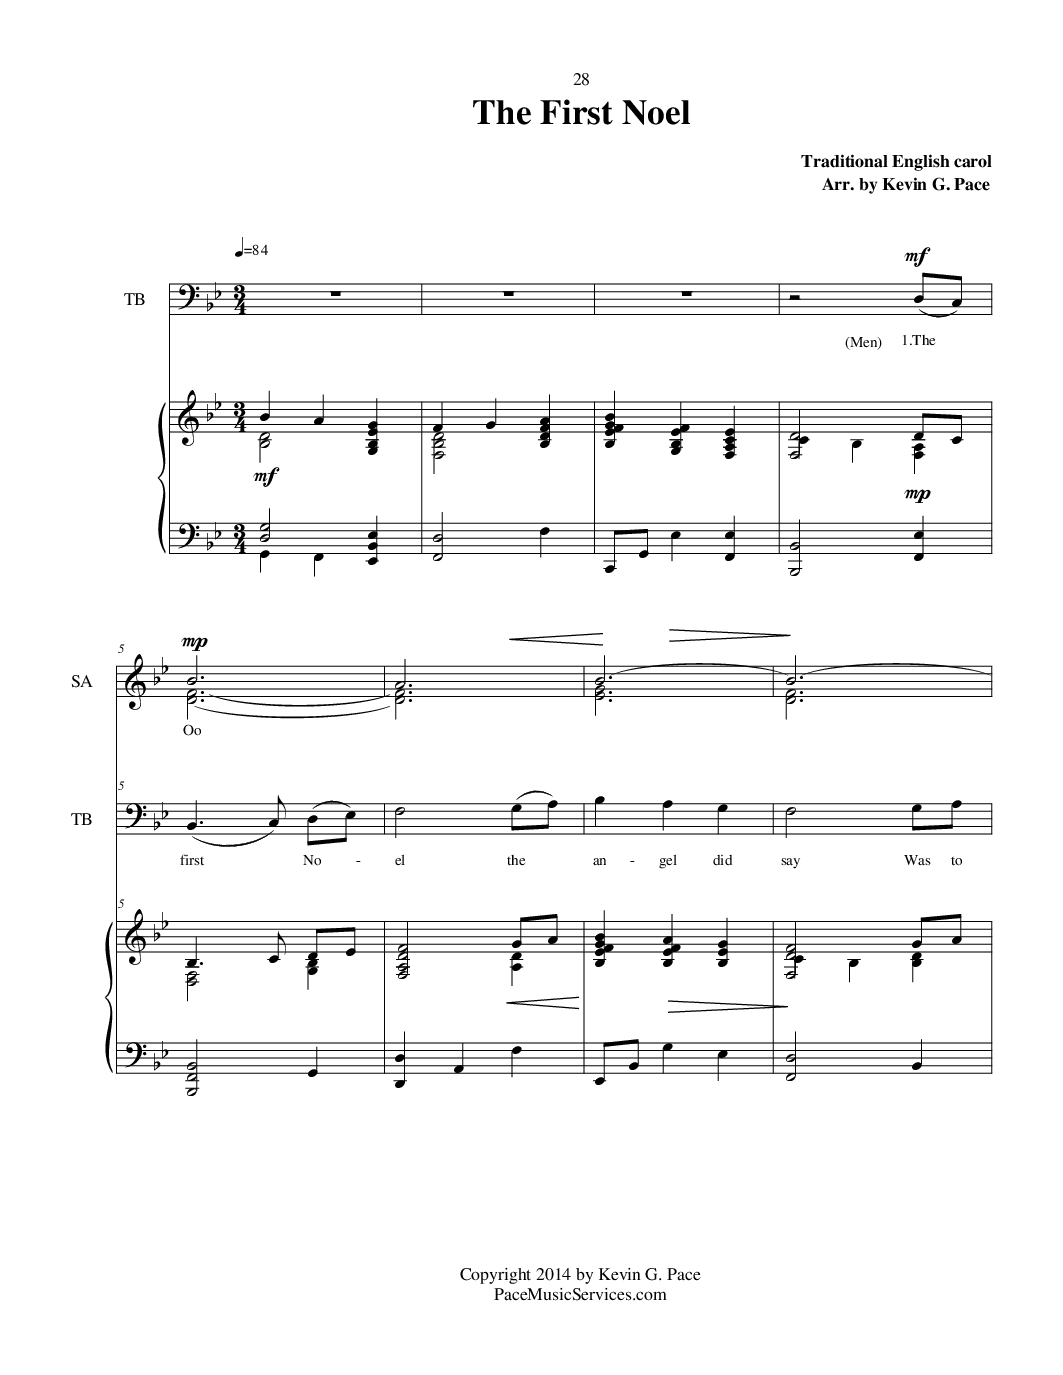 Christmas sheet music (993 Free Arrangements)